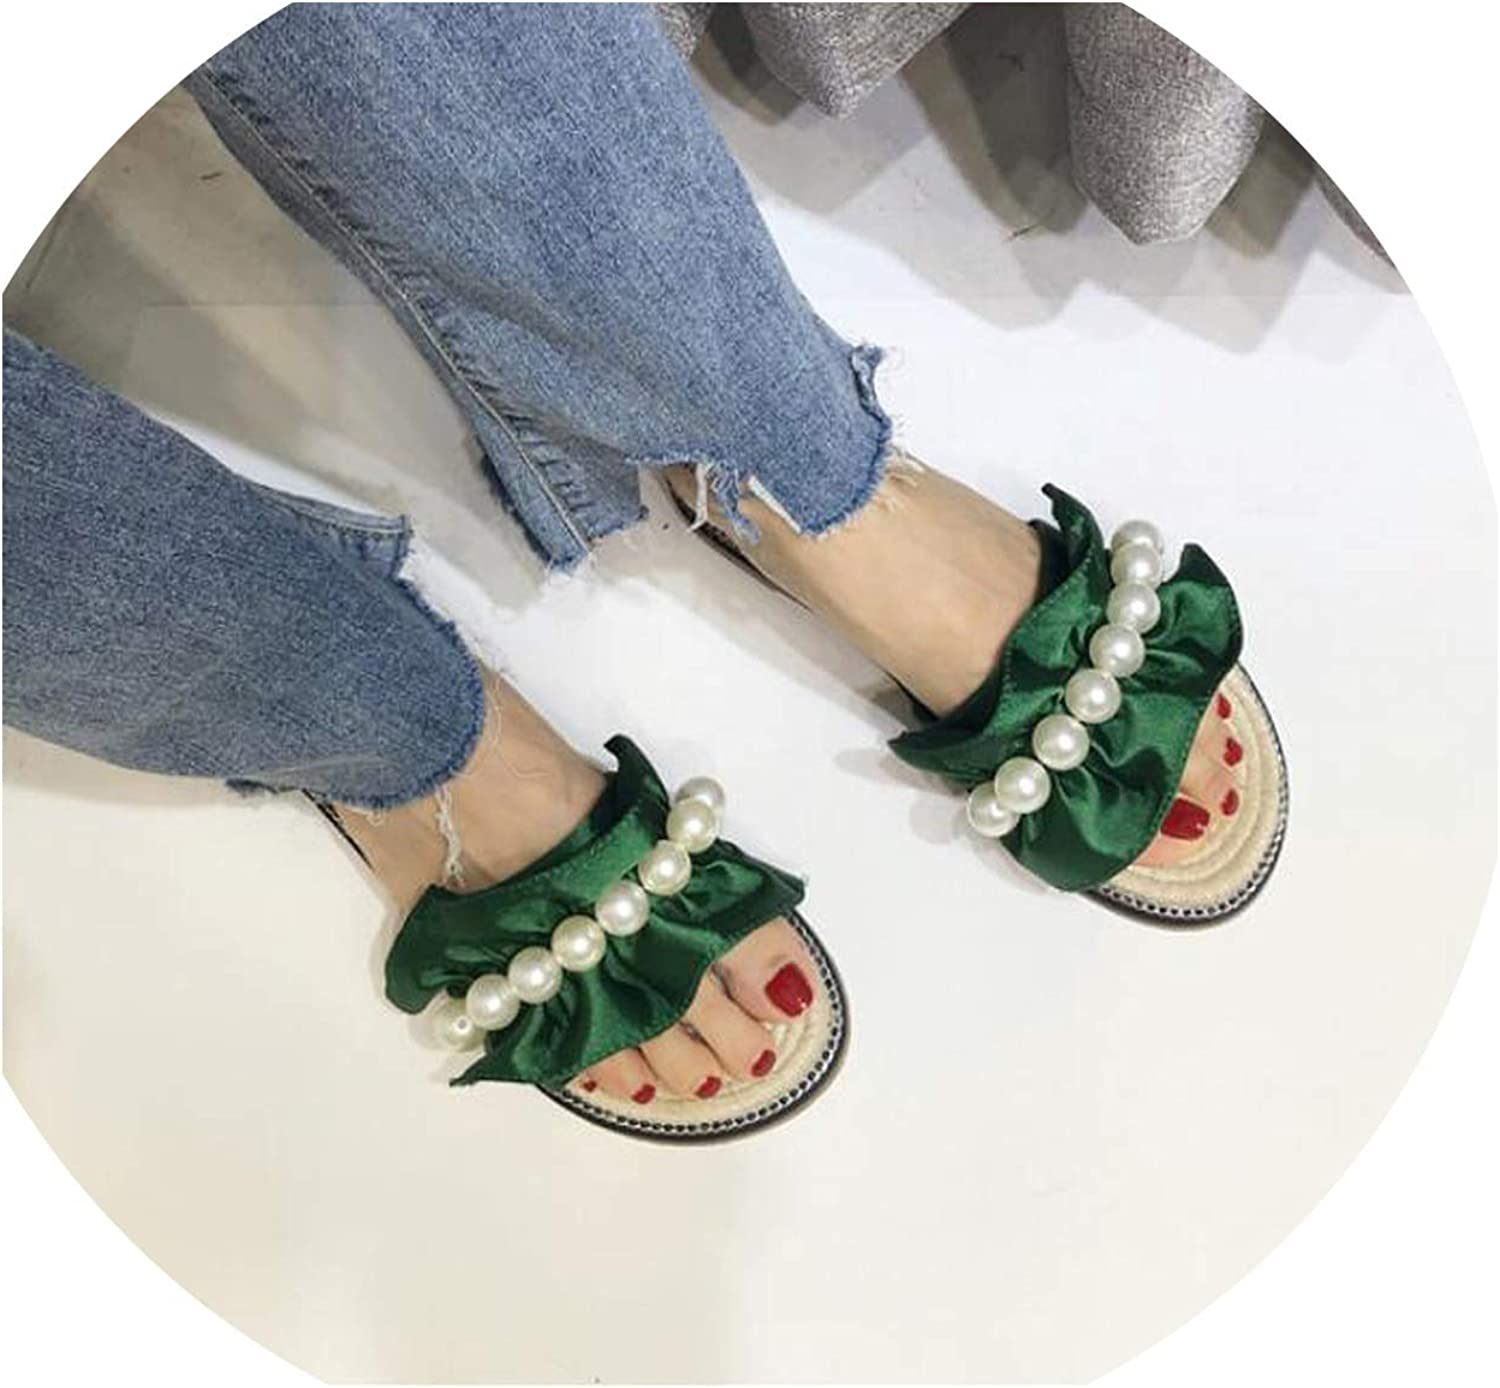 Beading Ruffles Slides Womendesign Pearl Decorate Slippers Woman Straw Knitting Flip Flops Woman Fisherman shoes Summer